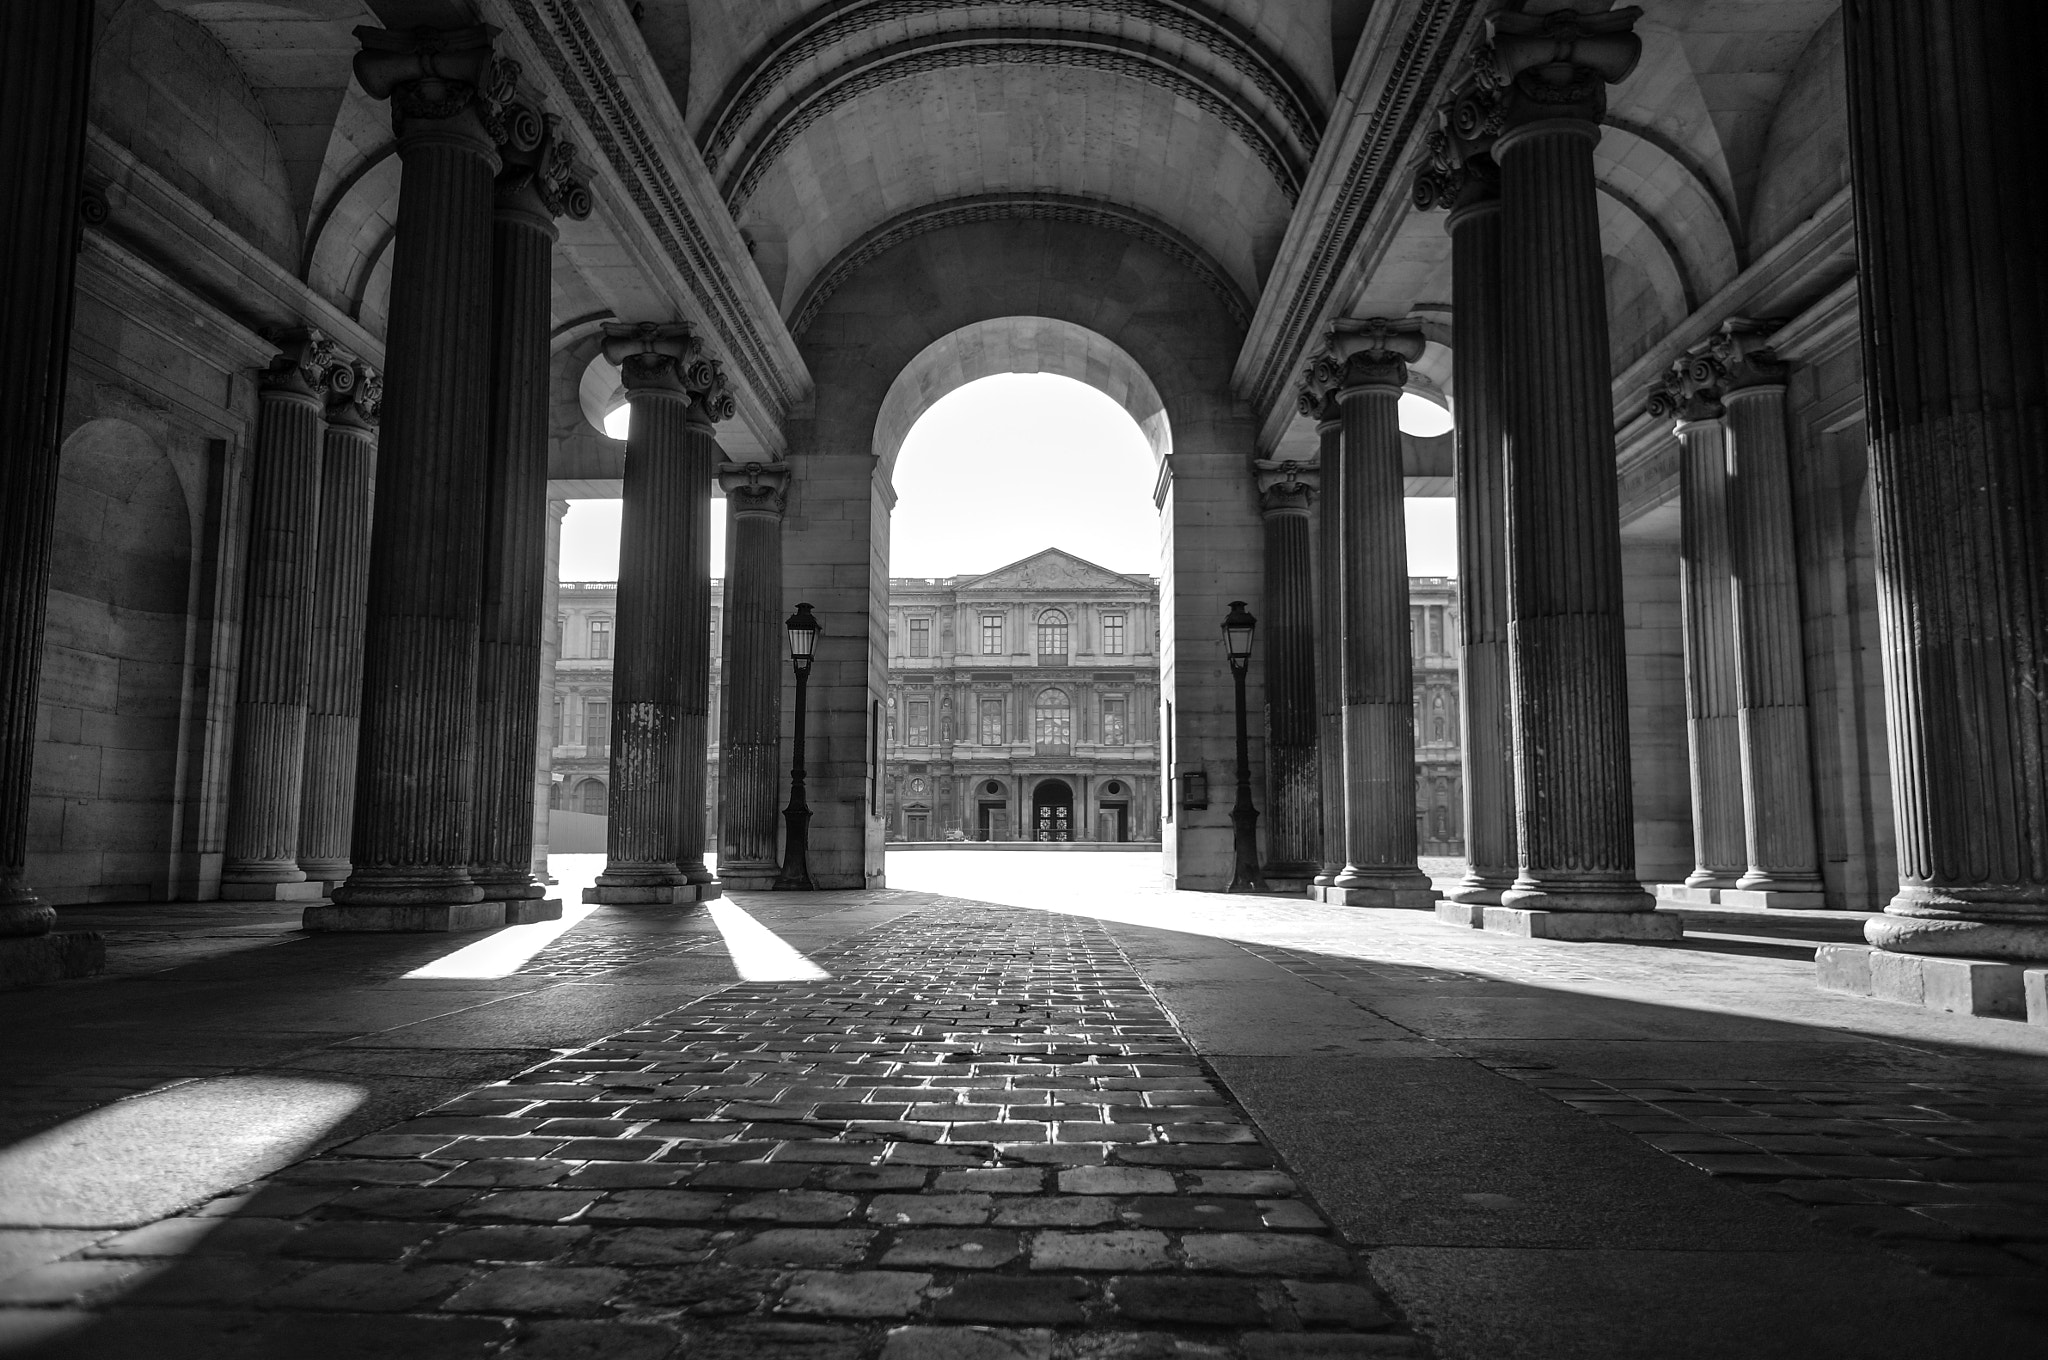 Photograph Le Louvre by @ harnahud on 500px